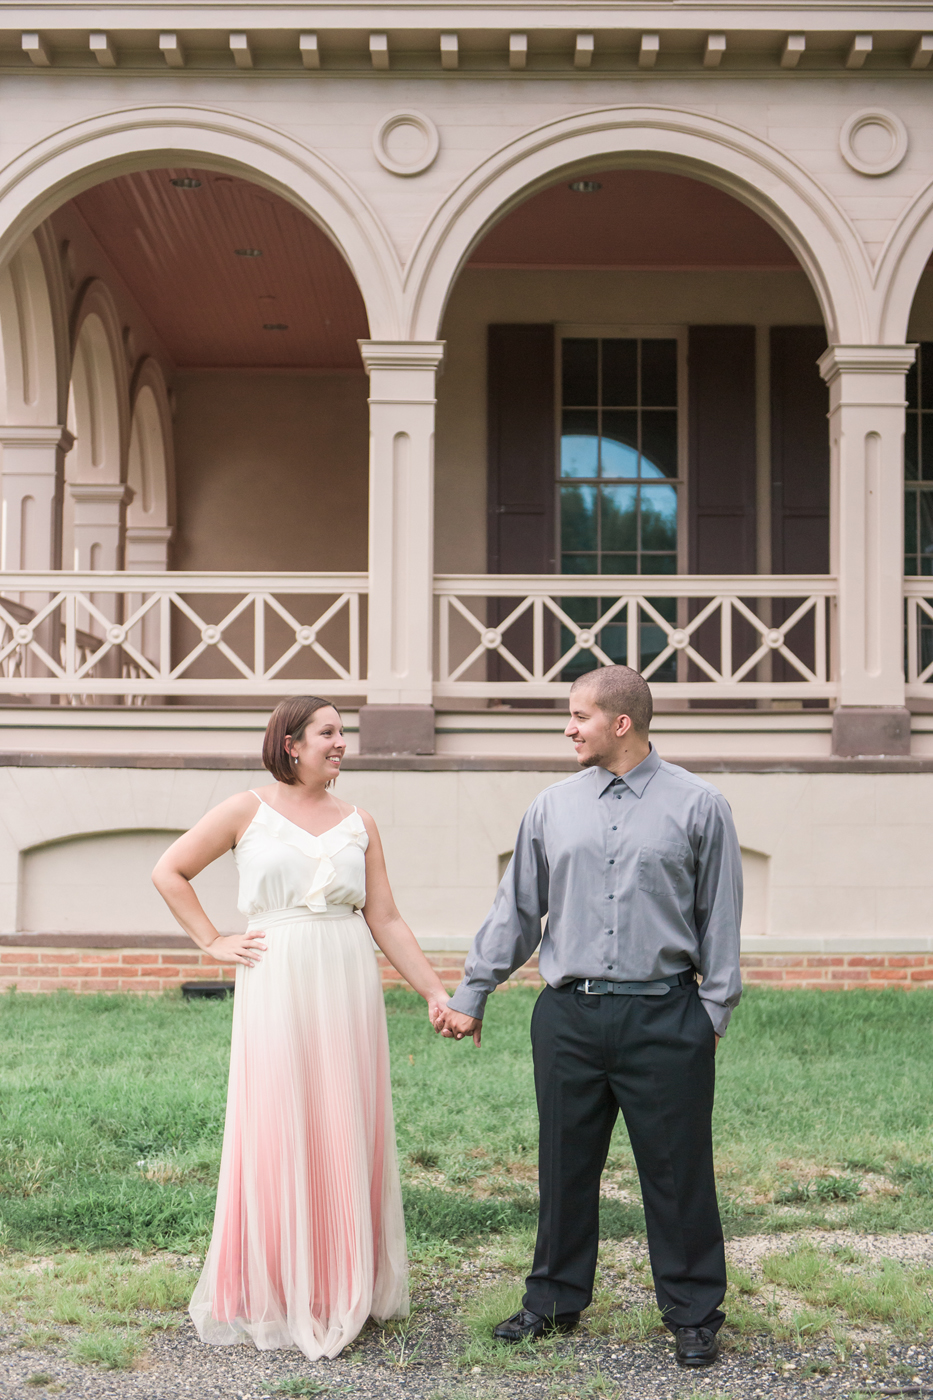 046-clifton_baltimore-collini-anniversary-2177